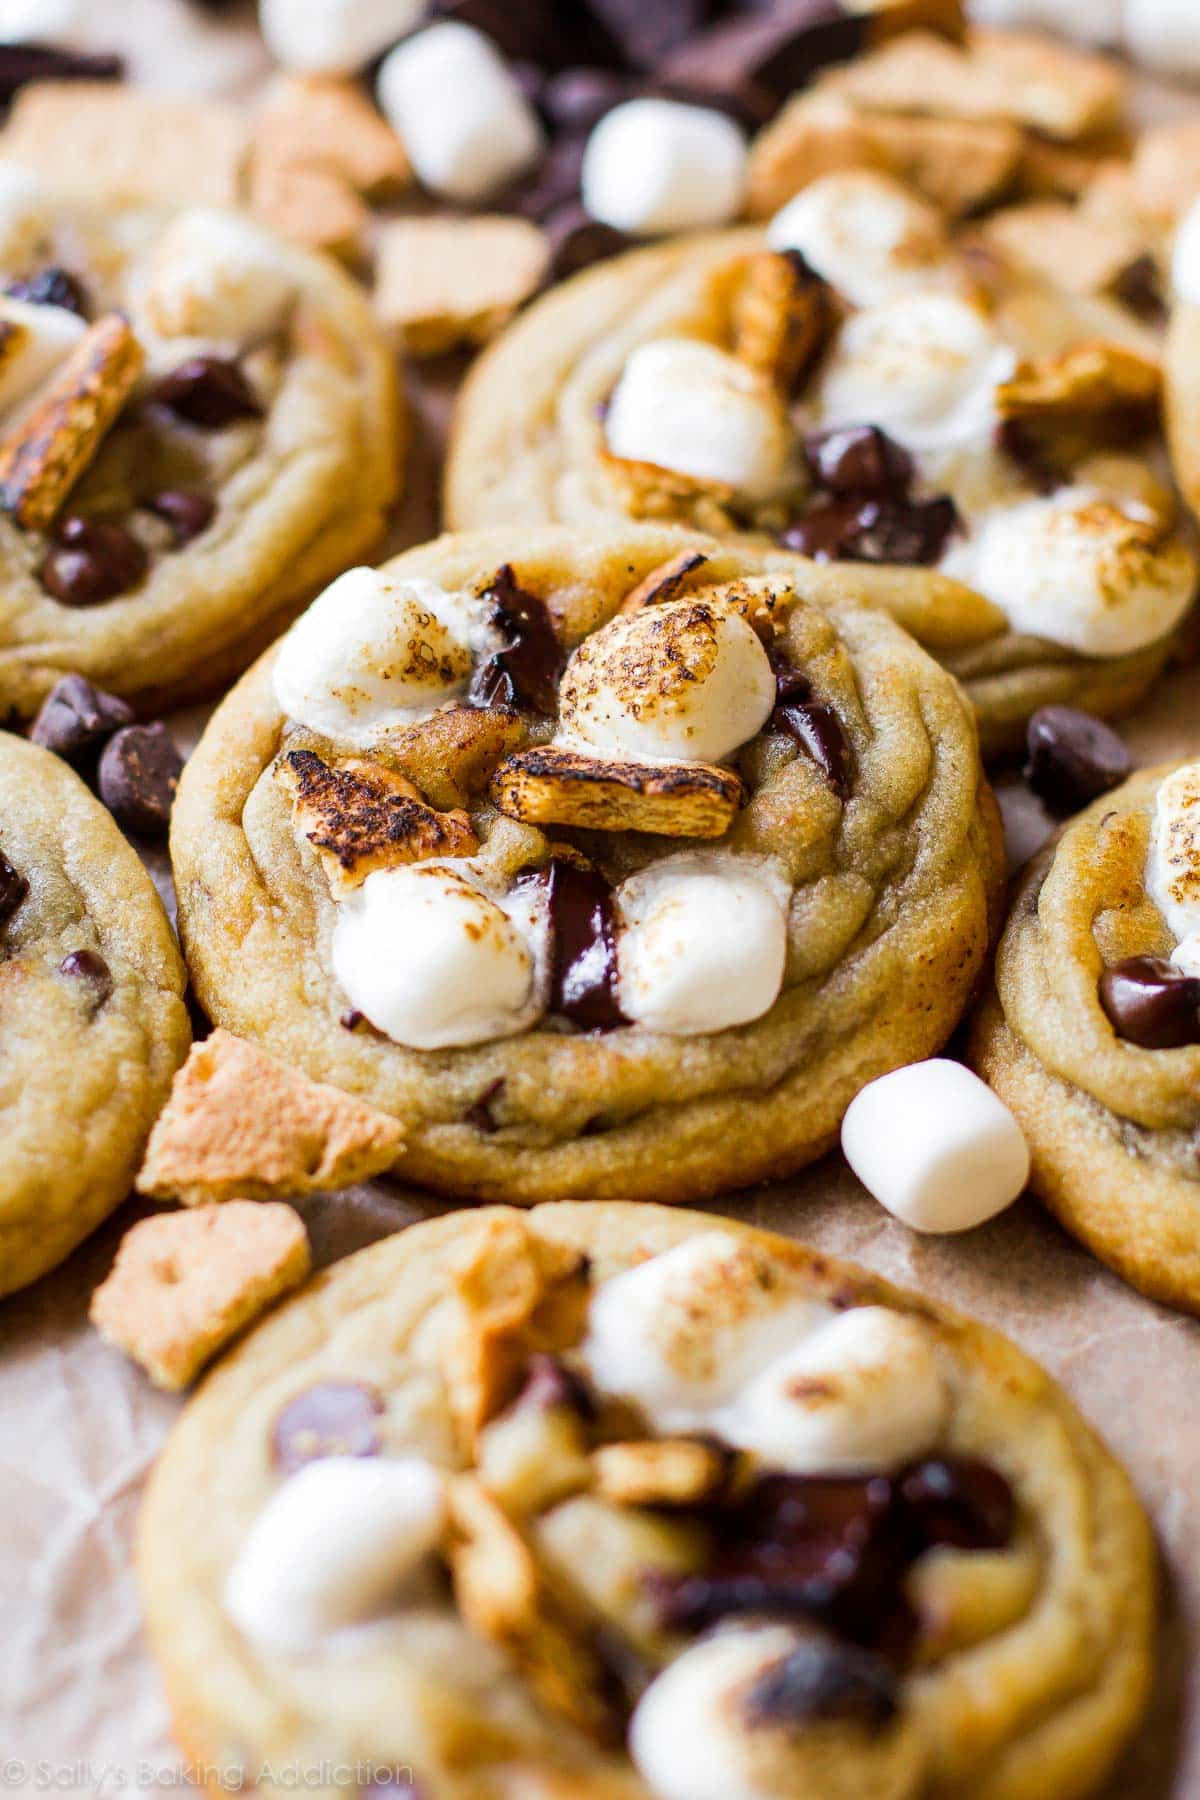 Toasted S'more Chocolate Chip Cookies - Sallys Baking Addiction